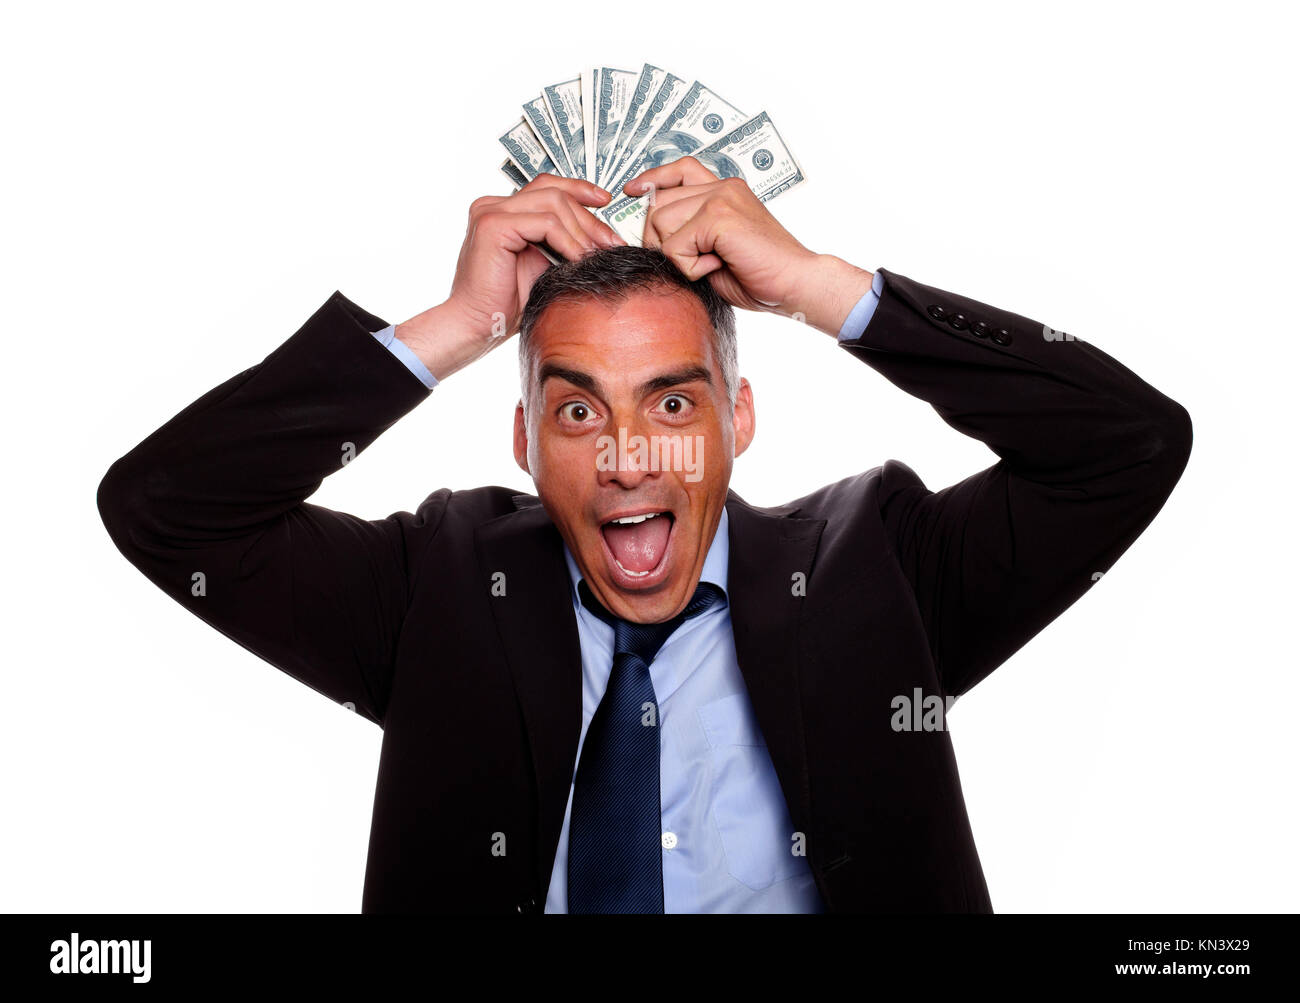 Portrait of a victorious mature person having fun with the earned money and wearing a black suit on isolated background. - Stock Image